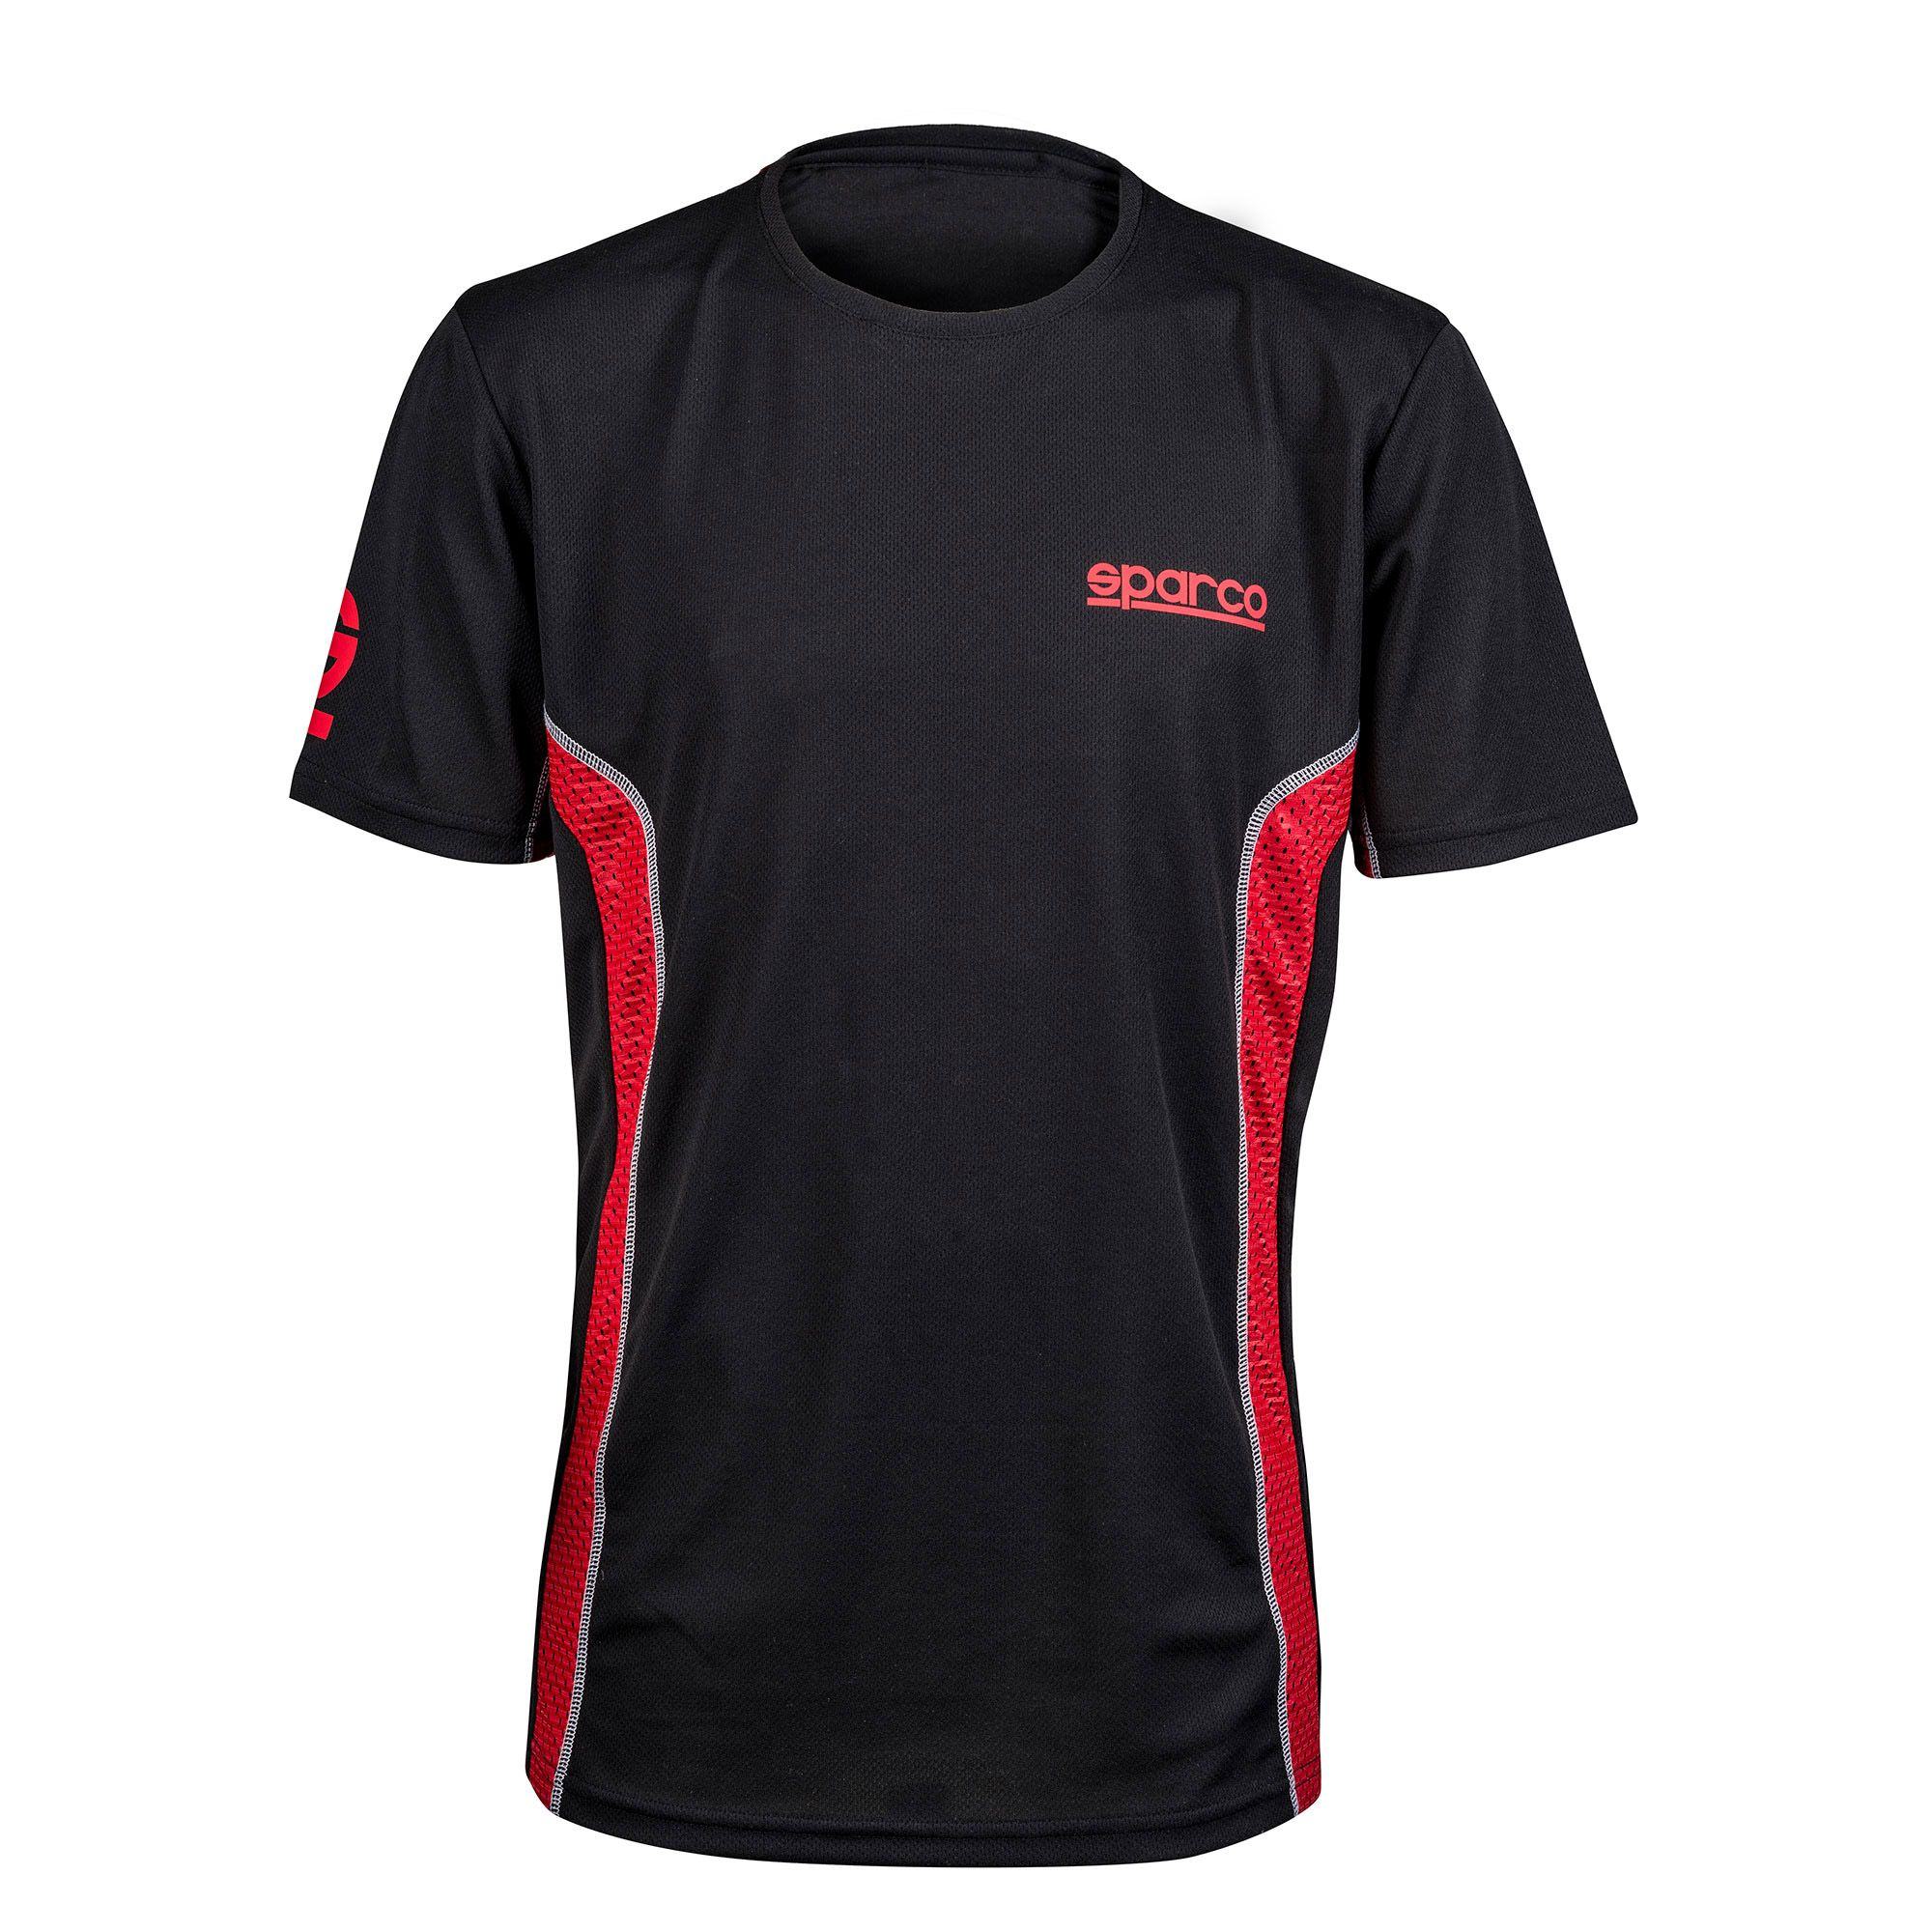 01219 Sparco TRON Racing Inspired T-Shirt 100/% Cotton Black in Sizes S-XXL New